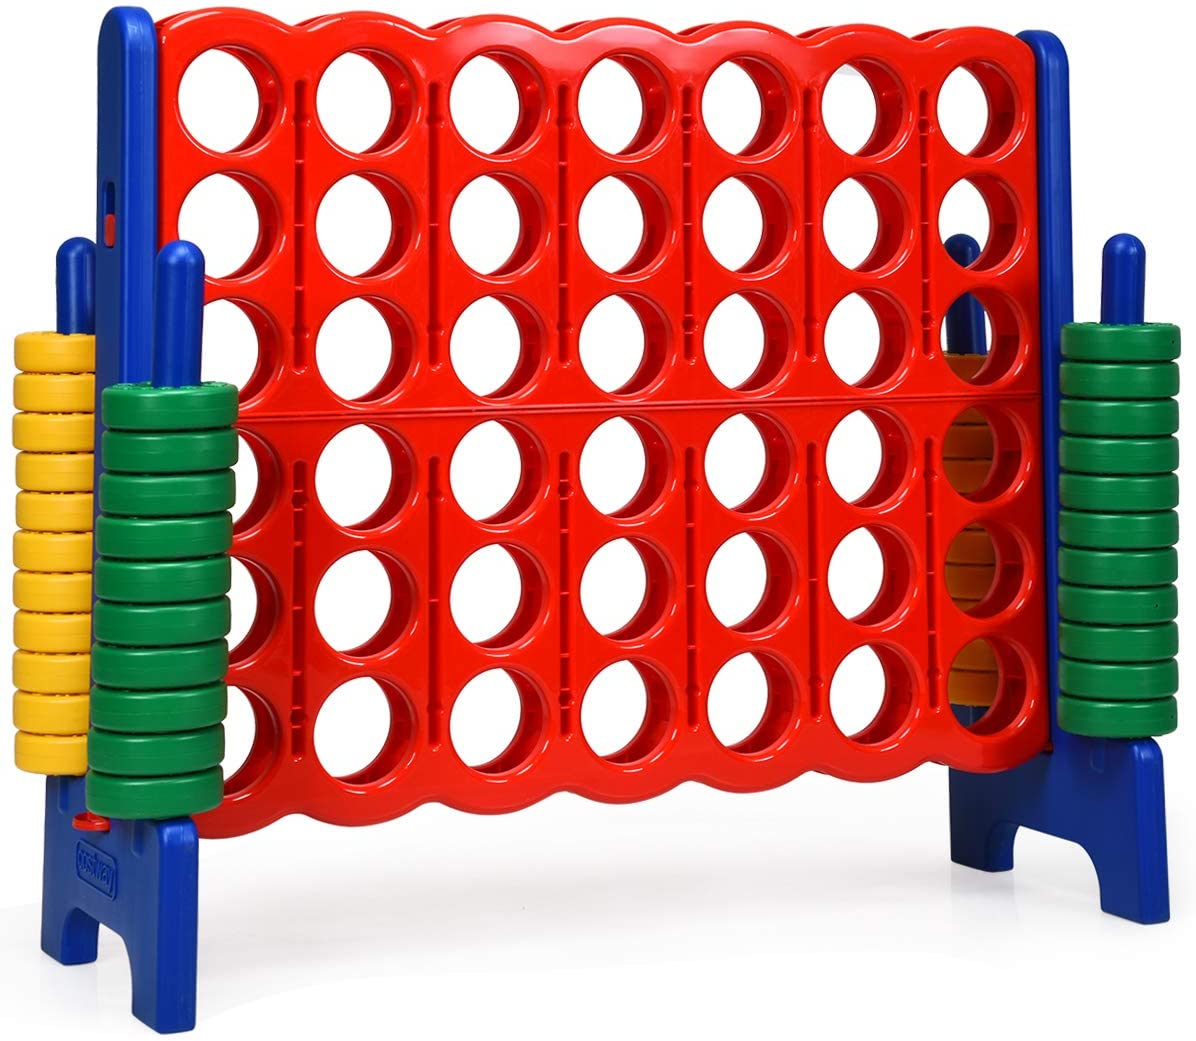 COSTWAY Jumbo 4-to-Score Giant Game Set 4 Kids Online limited product and Row A Max 66% OFF for in